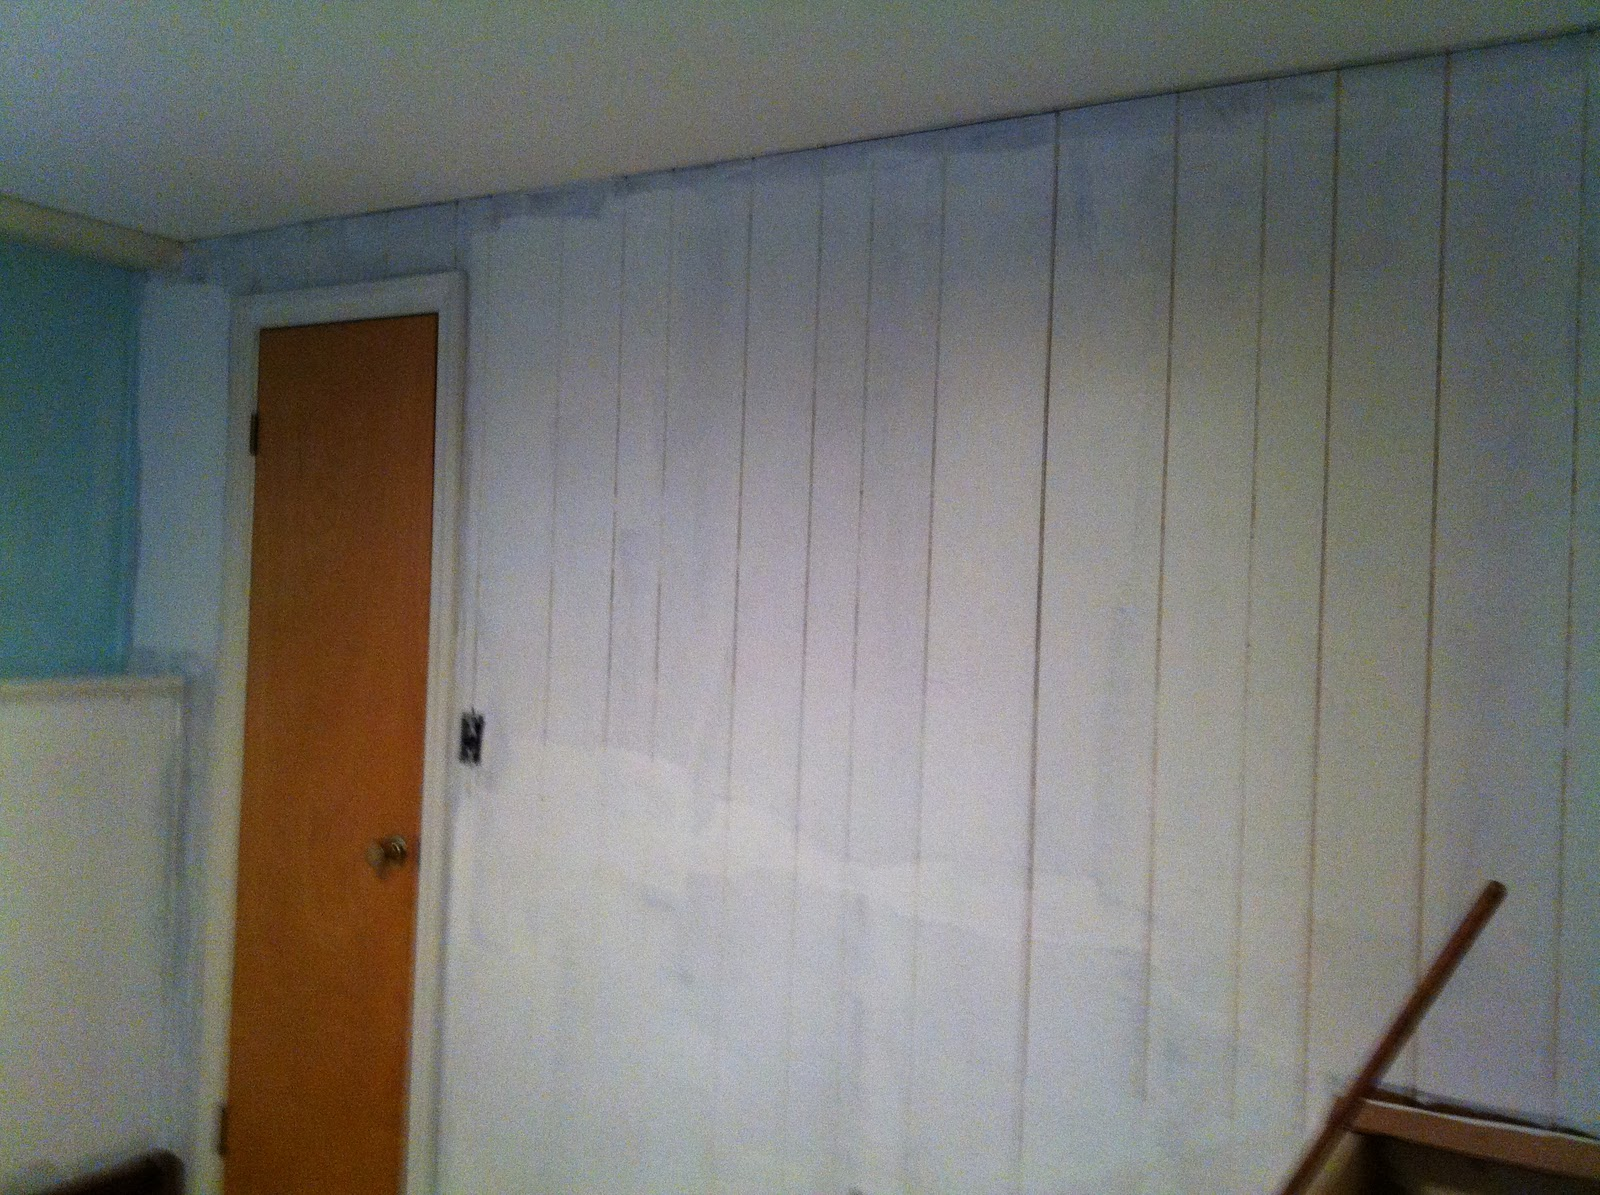 The pfaff pfix painting wood paneling Should i paint wood paneling